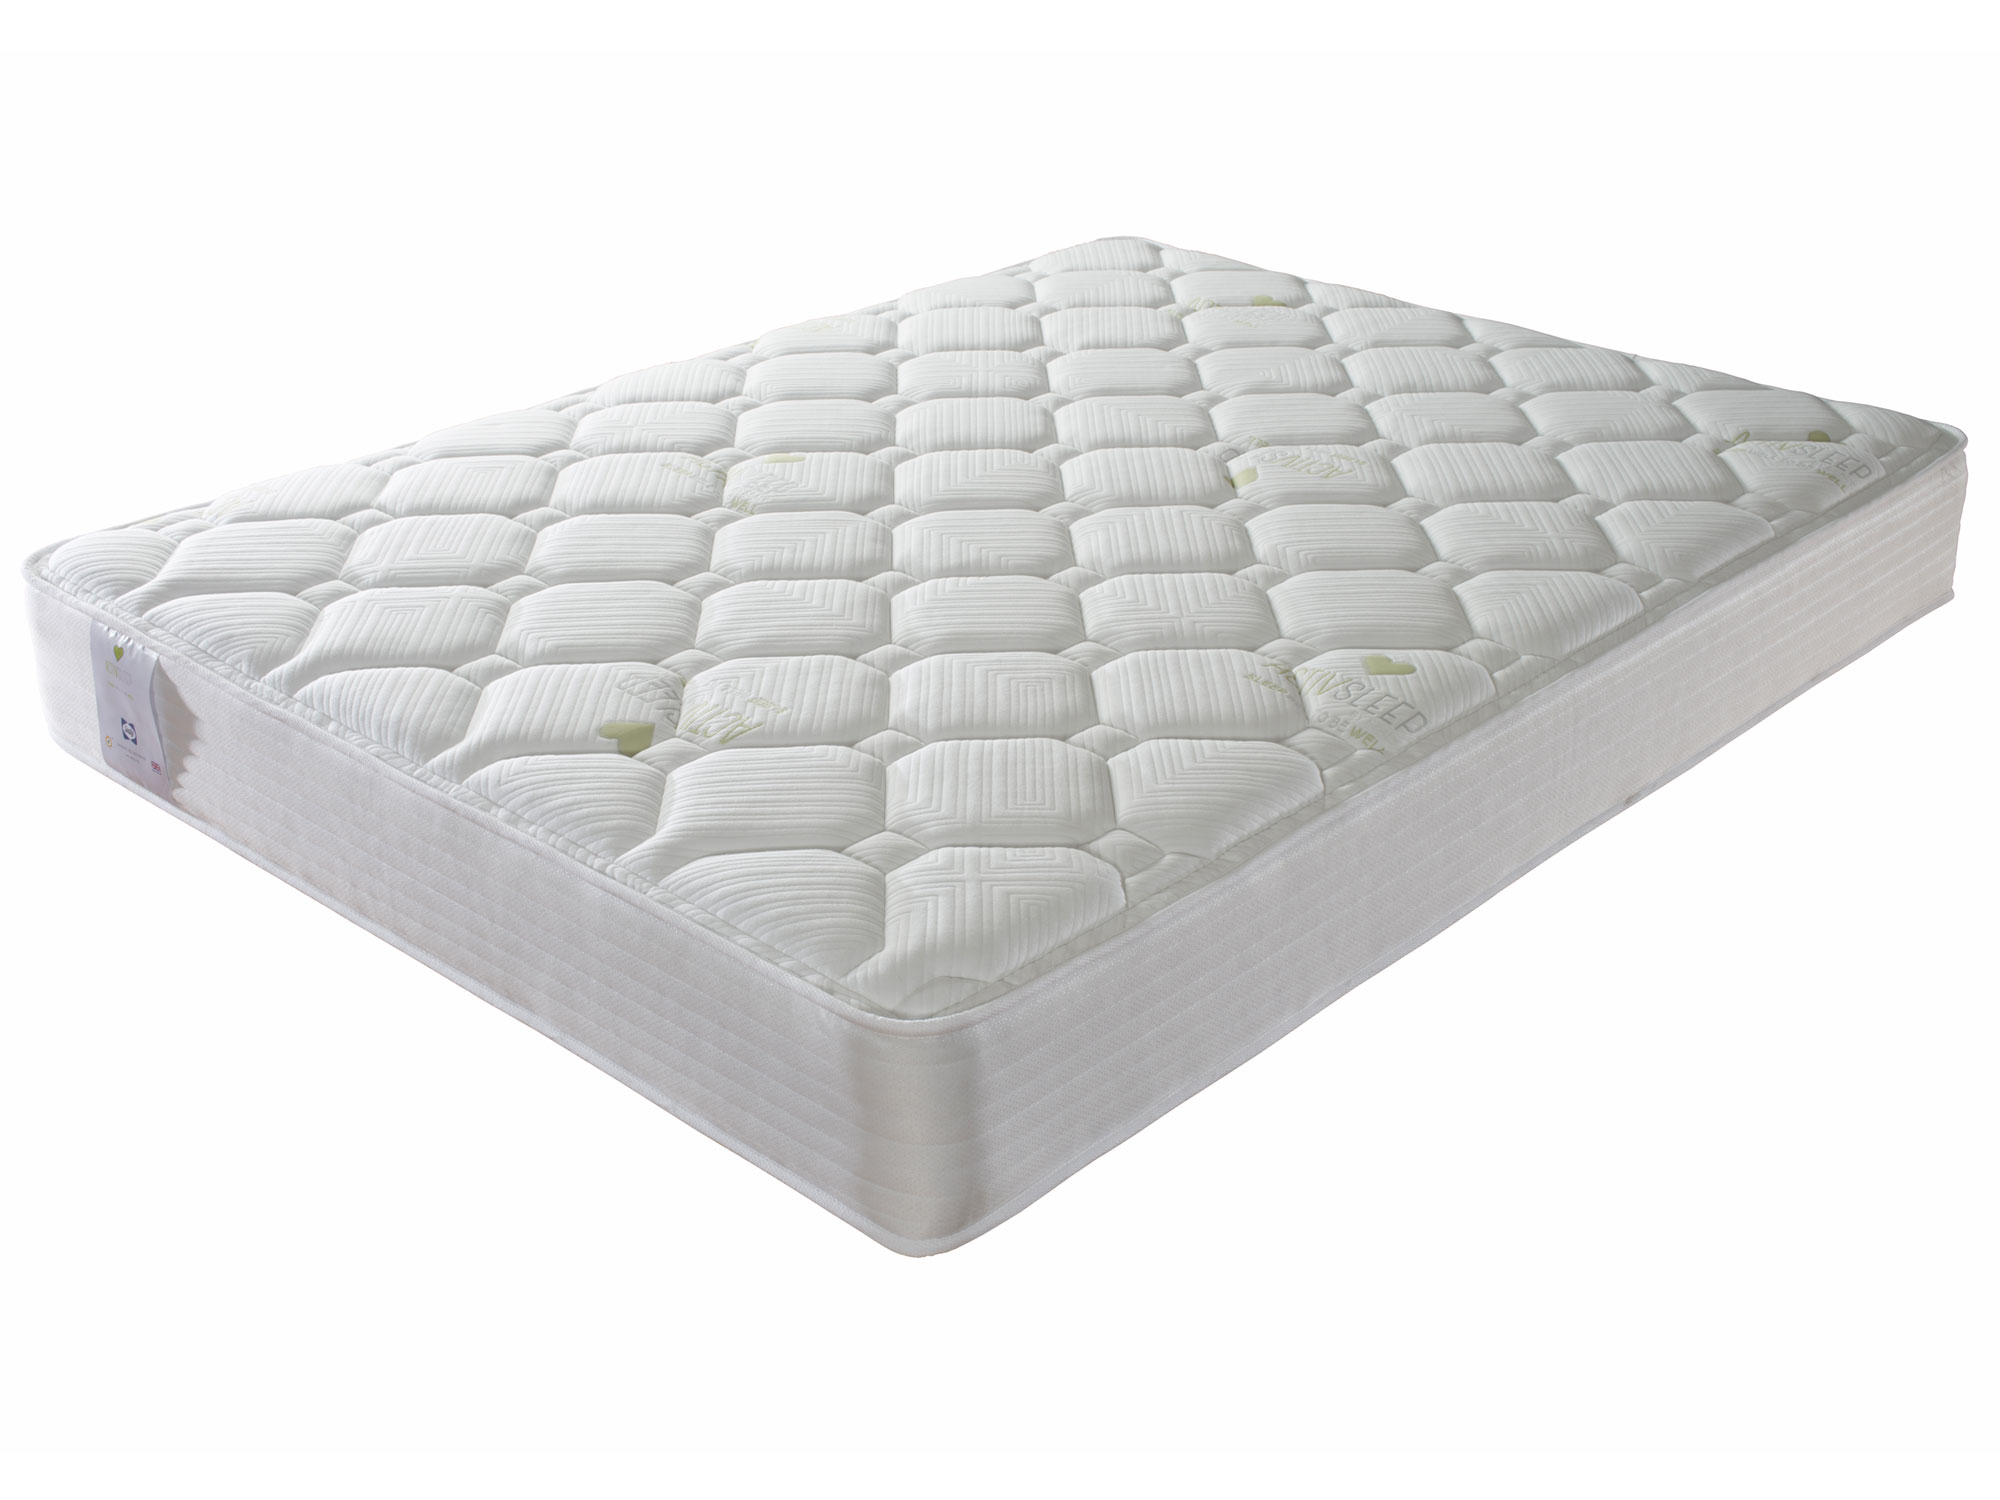 The Sleep Shop 5ft King Size Sealy Activsleep Ortho Posture Firm Support Mattress